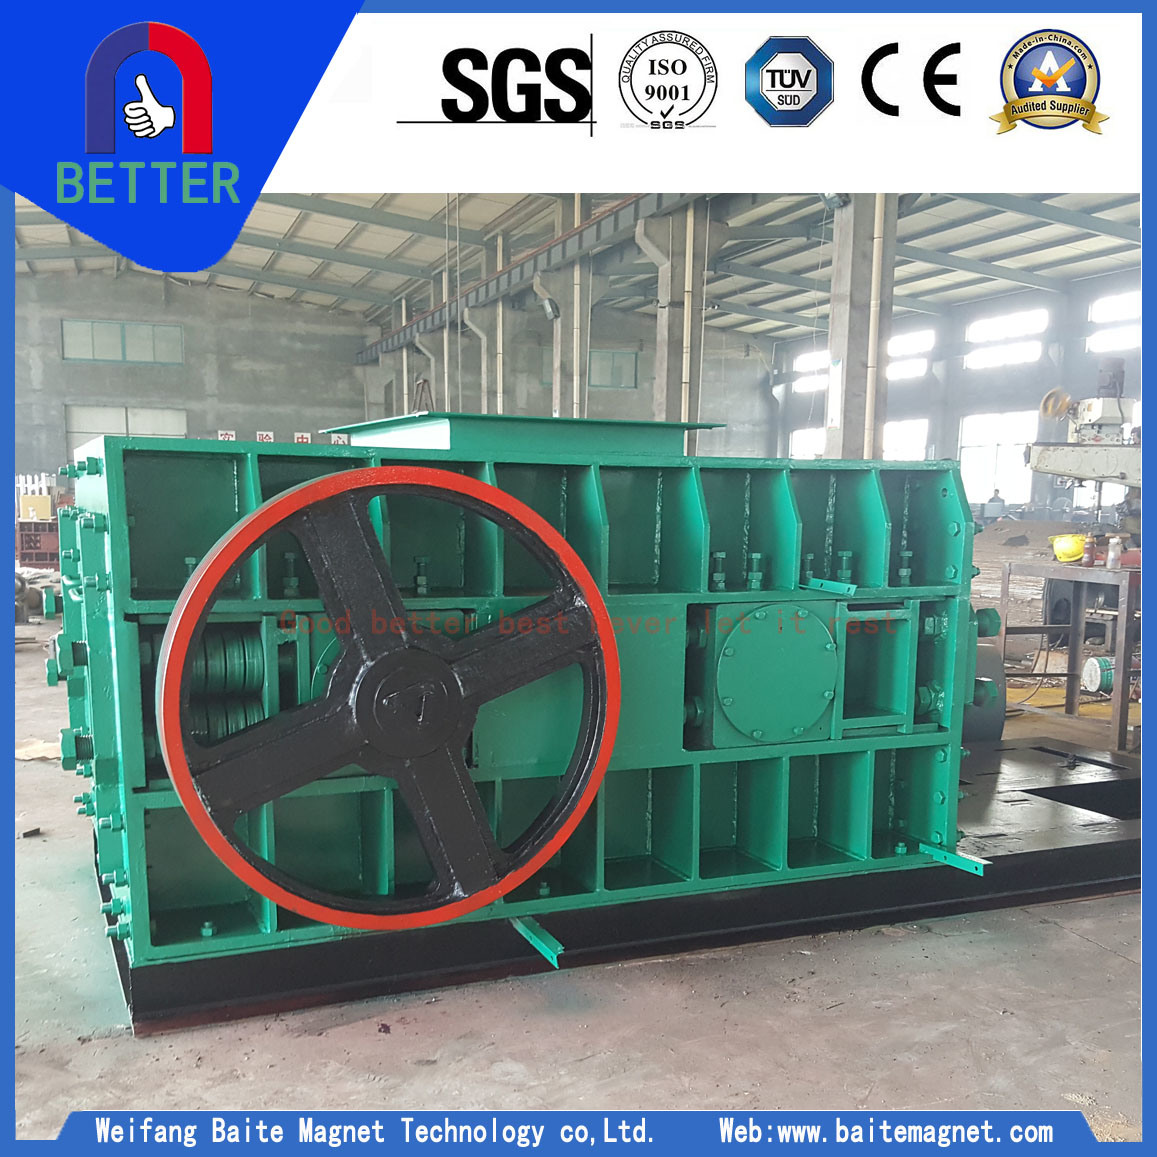 2pg Double Teeth Roller Crusher/ Stone Crusher for Gold Mine/Crushing Aggregate/ Rock/ Stone, pictures & photos